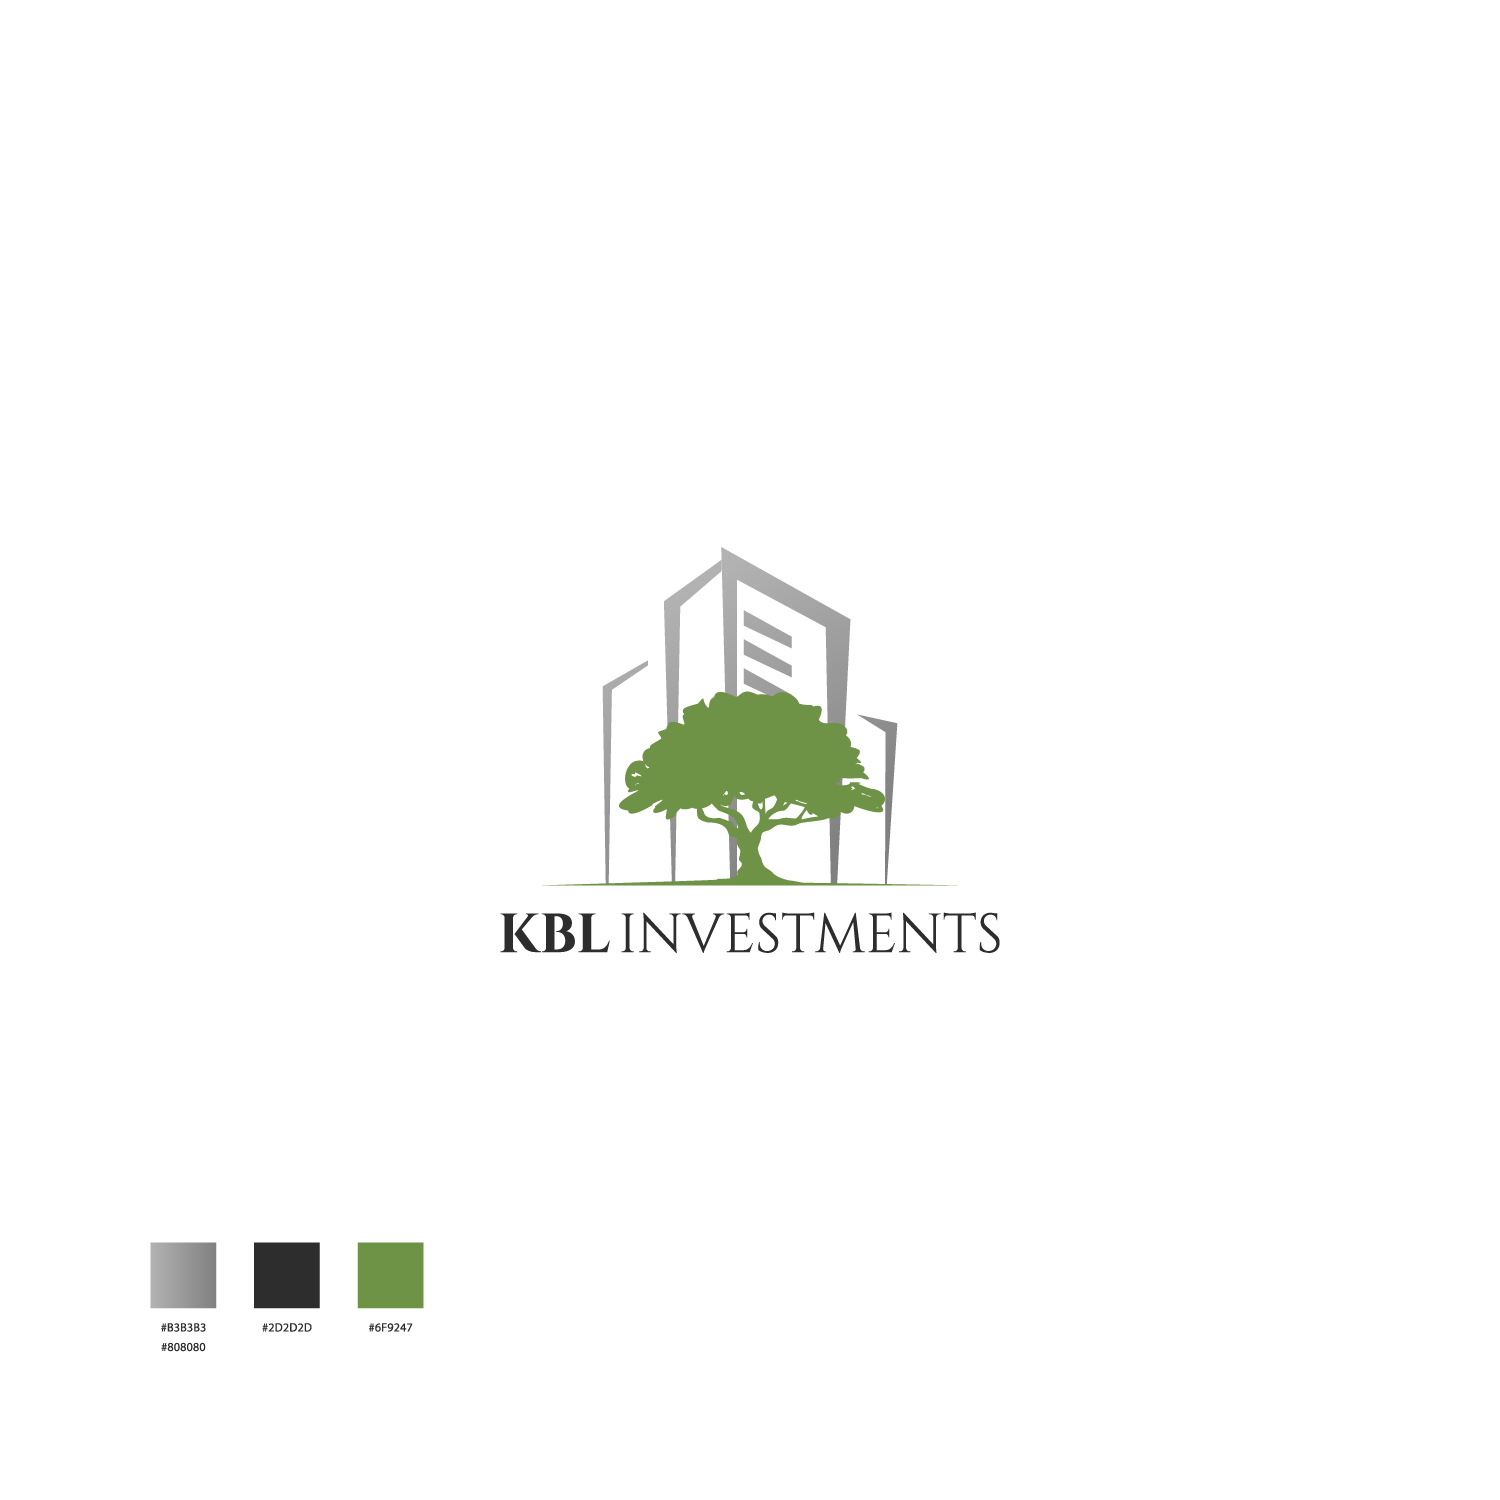 KBL Investments - We want to grow your investment!